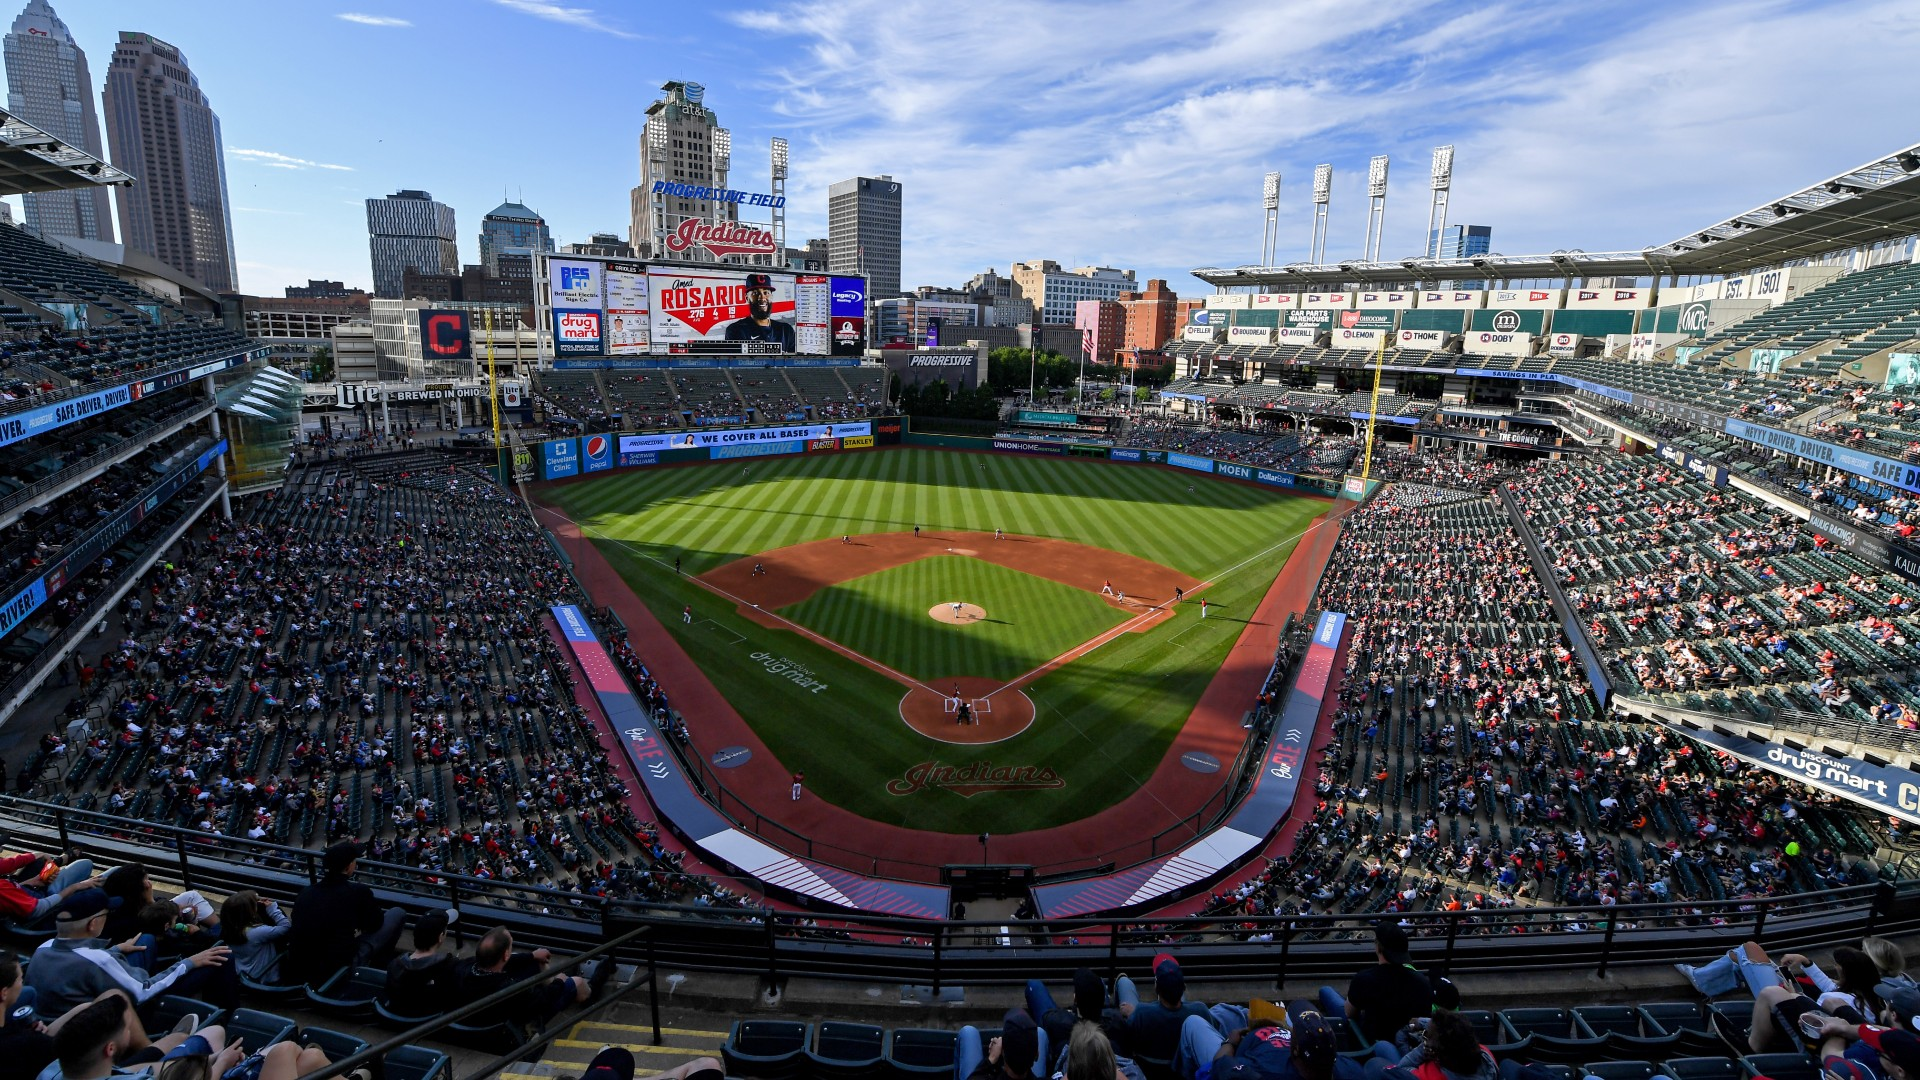 Known as the Indians since 1915, Cleveland confirmed via a video narrated by Tom Hanks that they will become the Guardians.